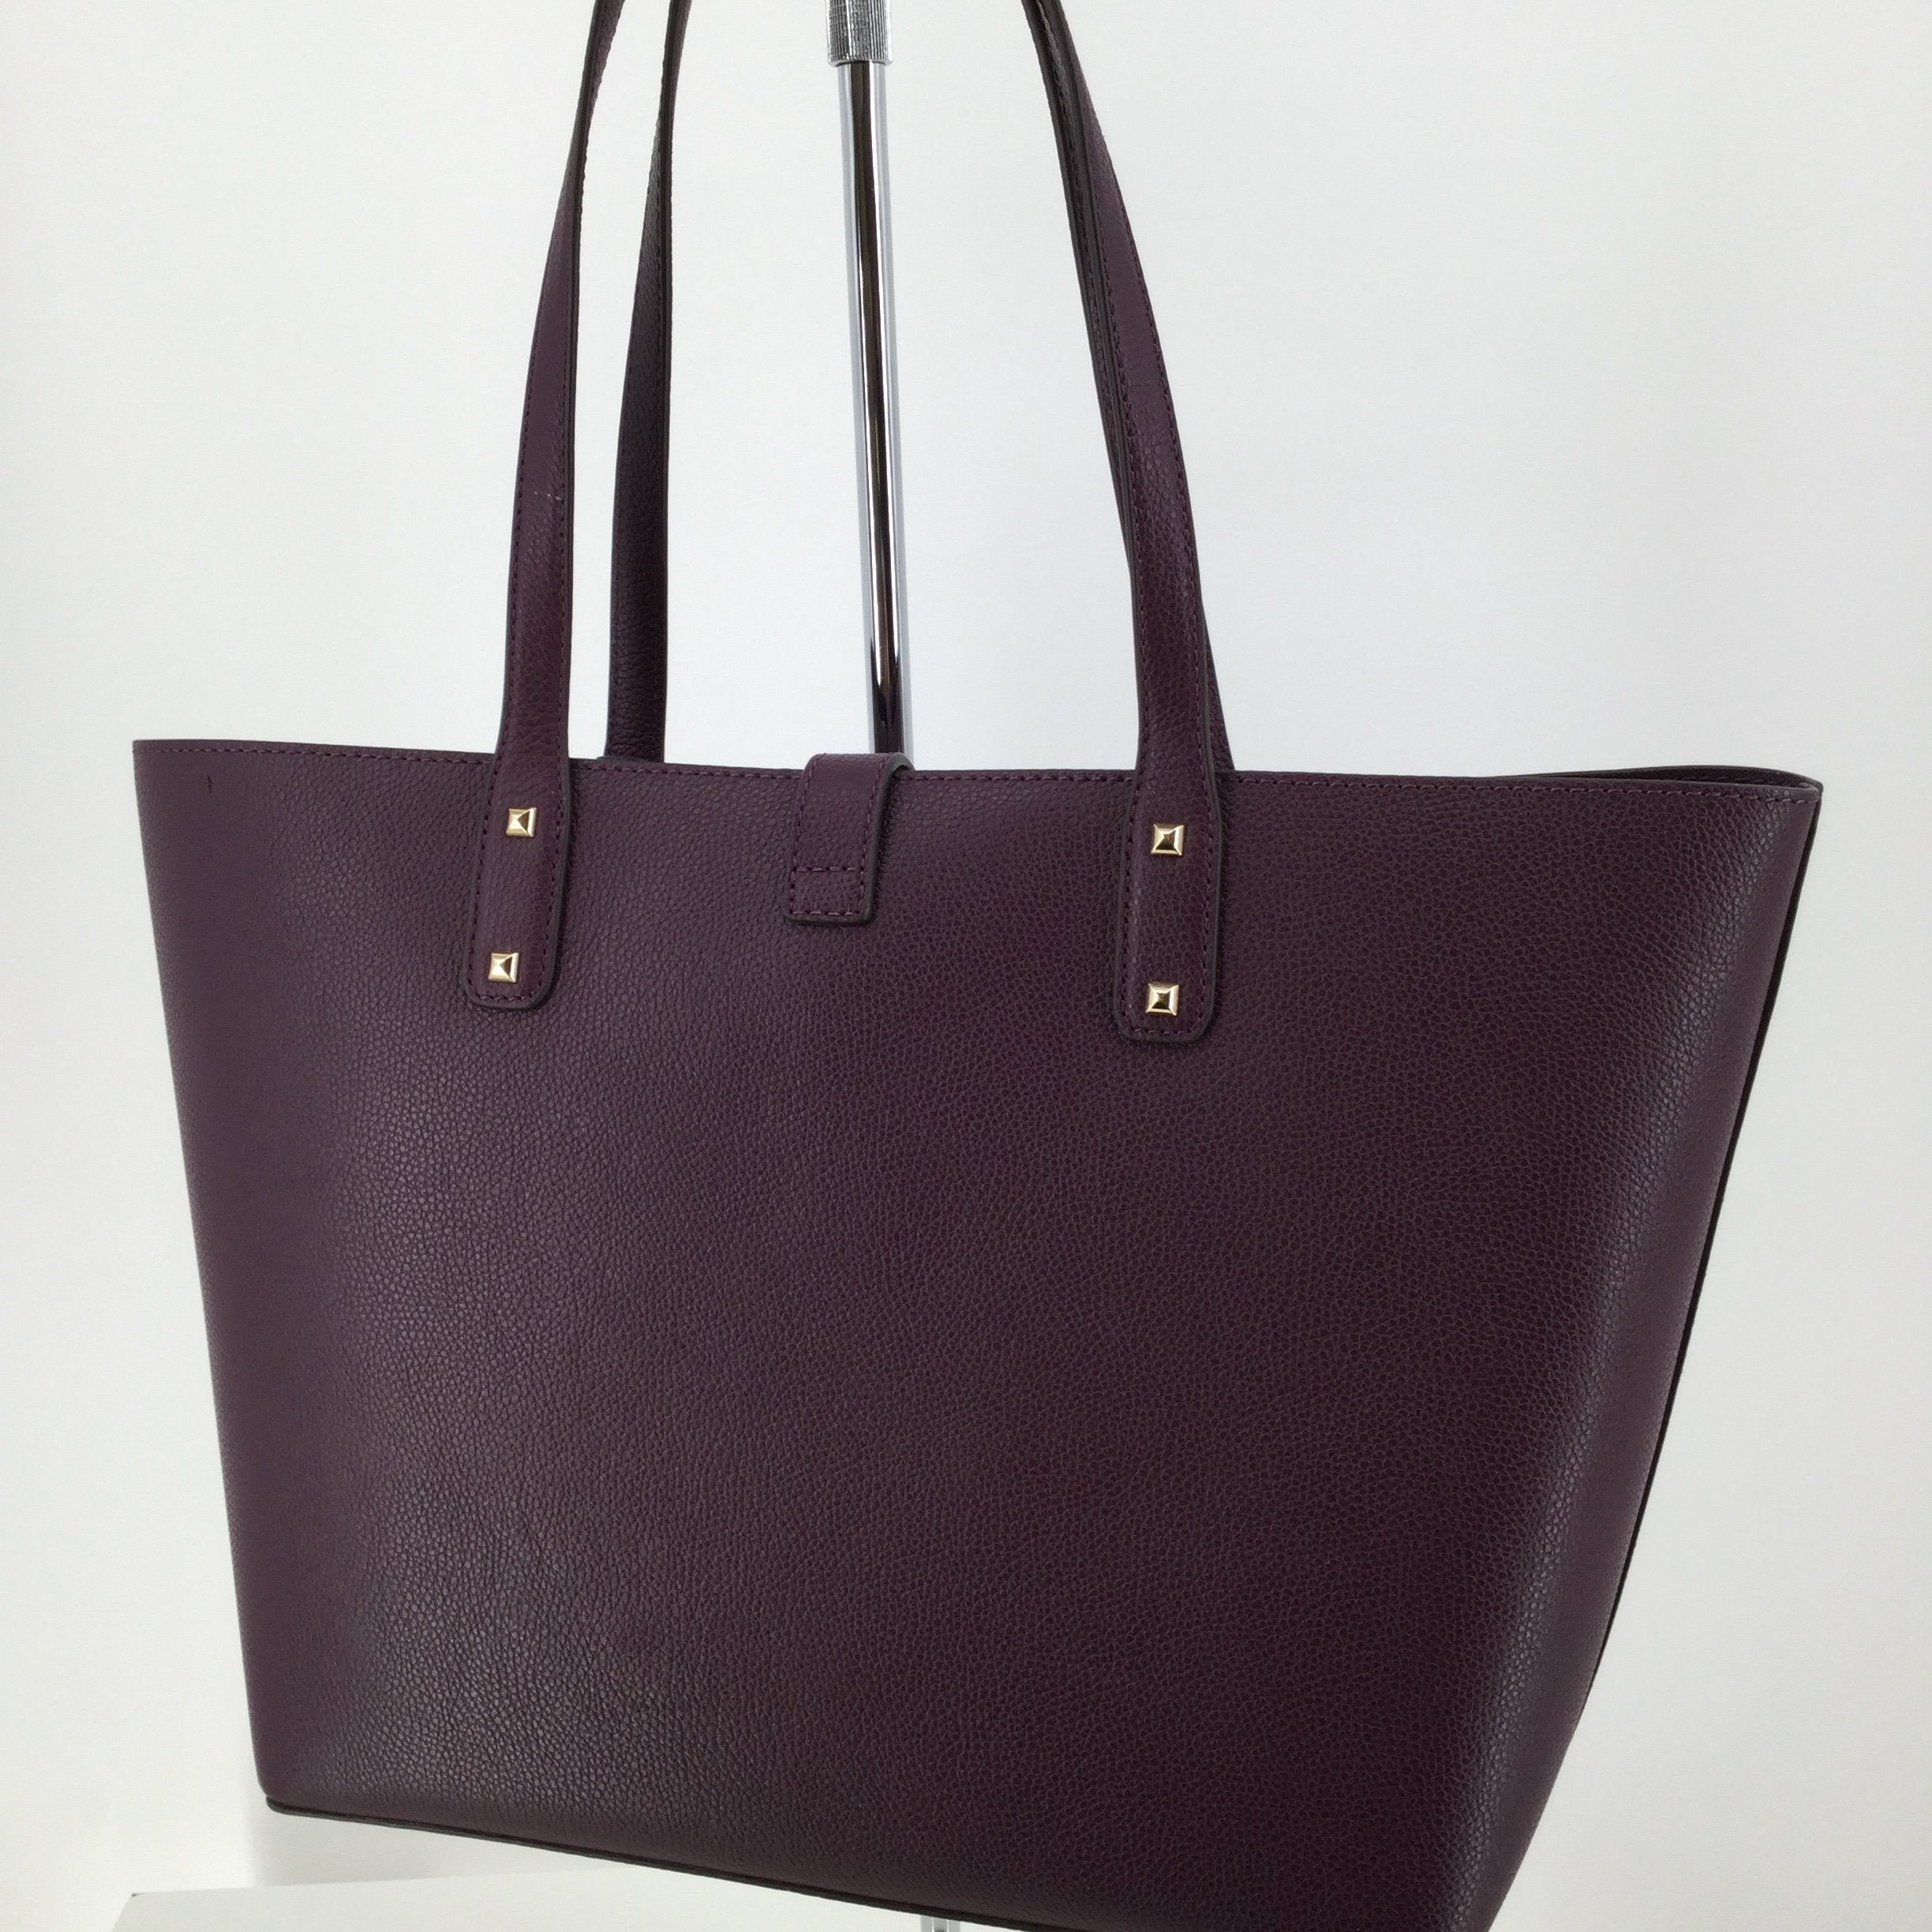 Michael Kors Designer Handbag, Leather, Purple, Size: Large - <P>THIS PURPLE MICHAEL KORS IS LARGE ENOUGH TO FIT EVERYTHING YOU NEED! IT IS IN VERY GOOD CONDITION WITH LITTLE TO NO WEAR.</P>